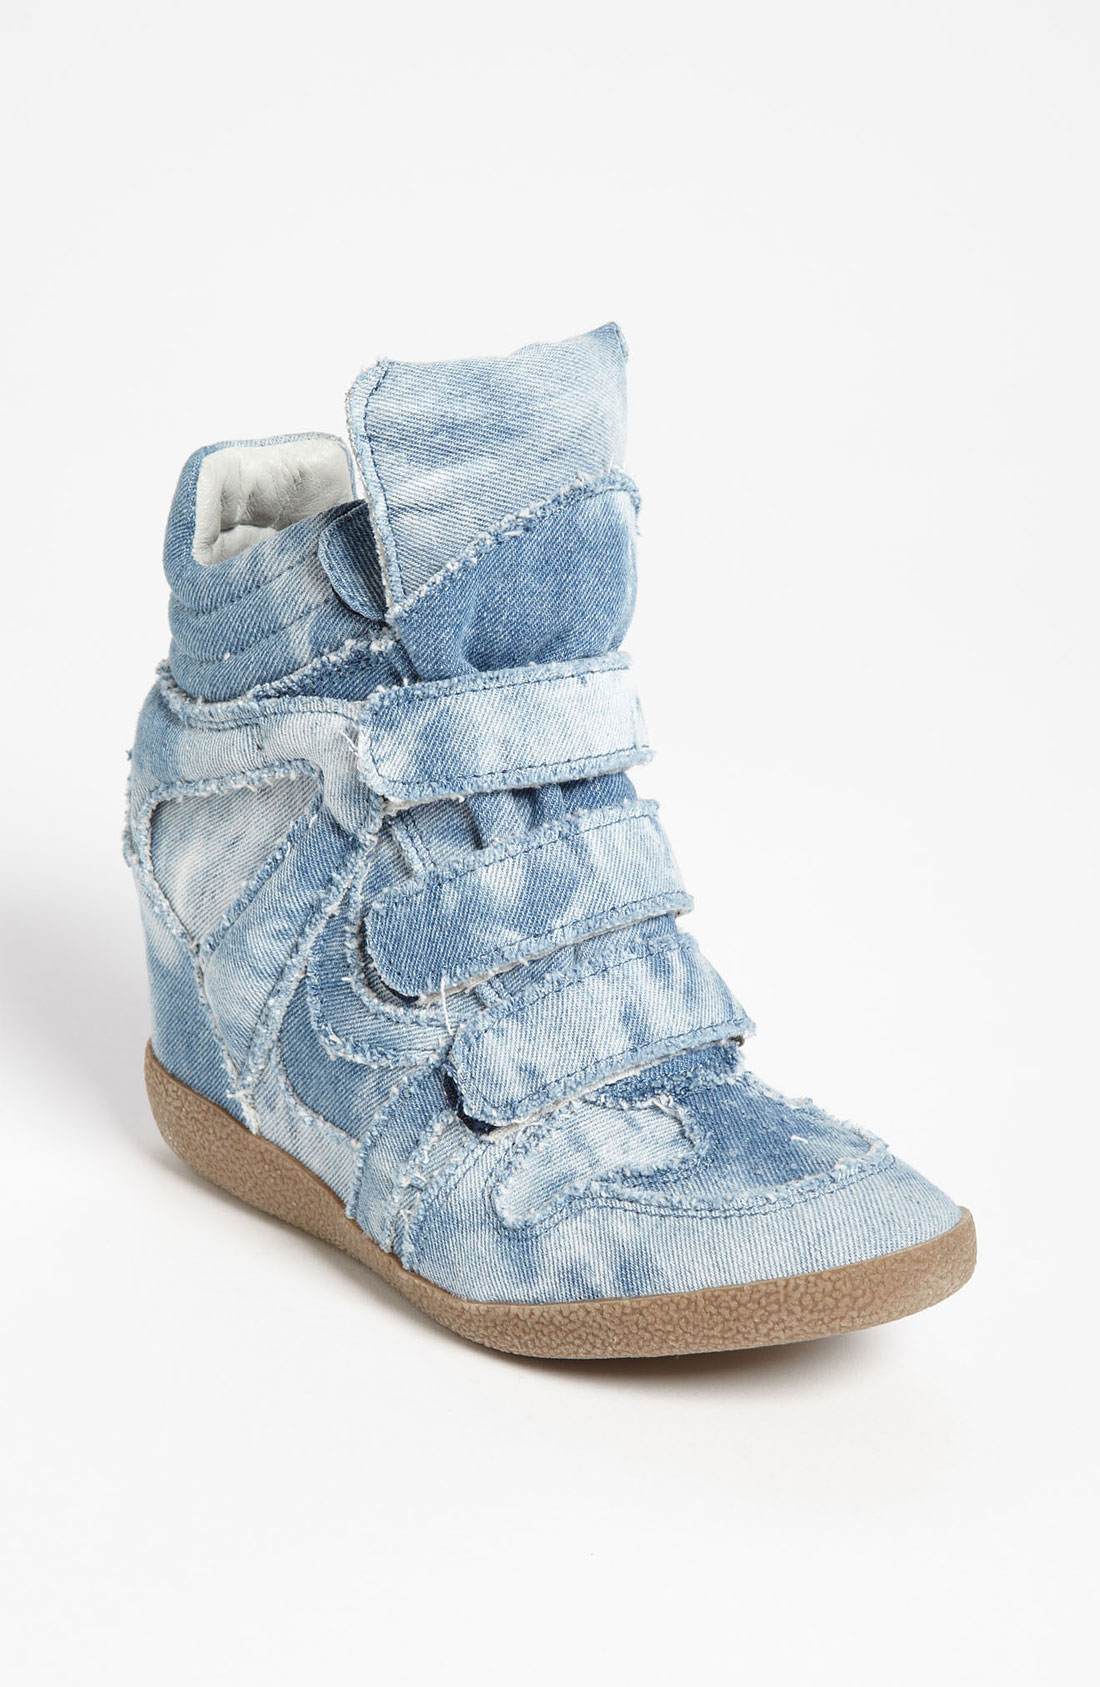 Steve Madden Hilitec Wedge Sneaker In Blue Denim Lyst